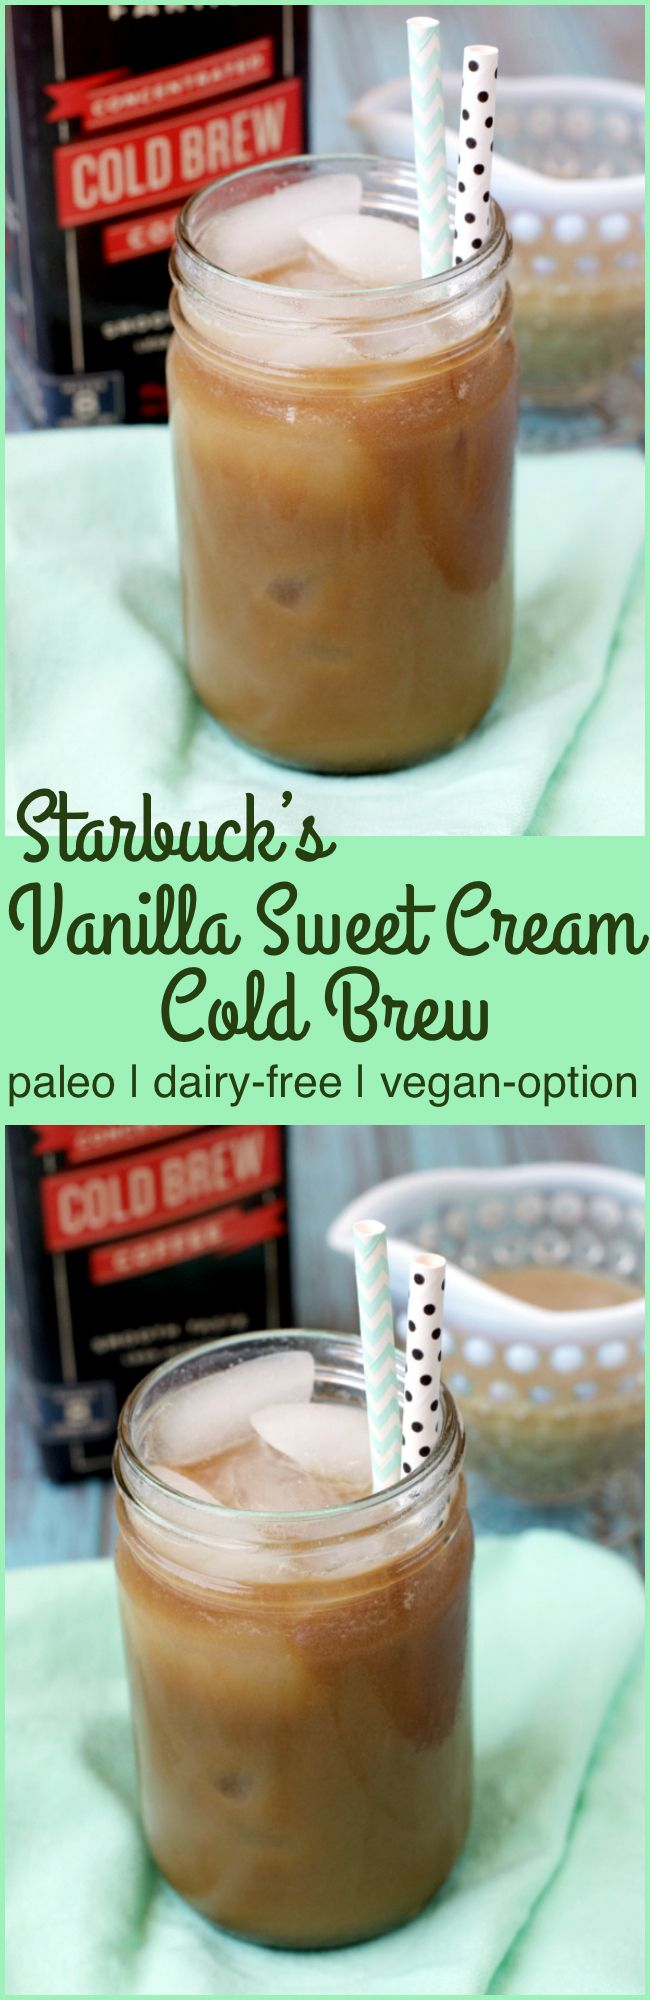 Paleo Starbuck's Vanilla Sweet Cream Cold Brew Recipe